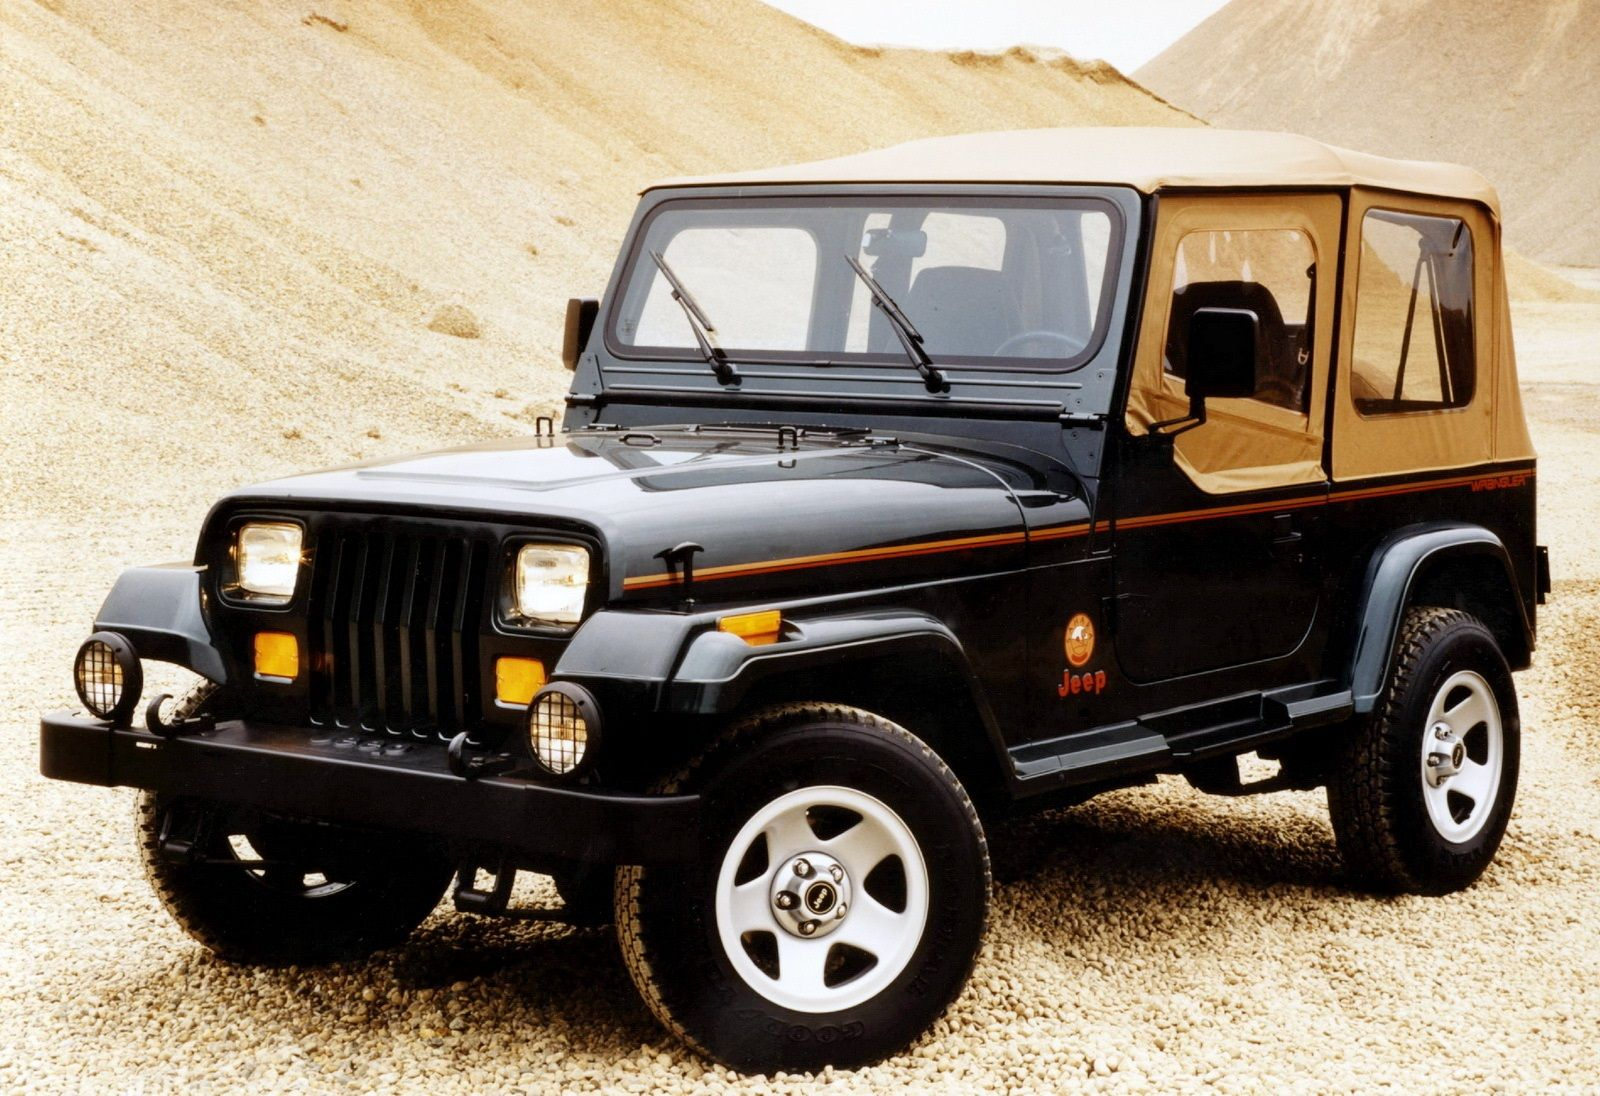 1991 to 1995 Jeep Wrangler YJ SUVs For Sale 1991 and 1995